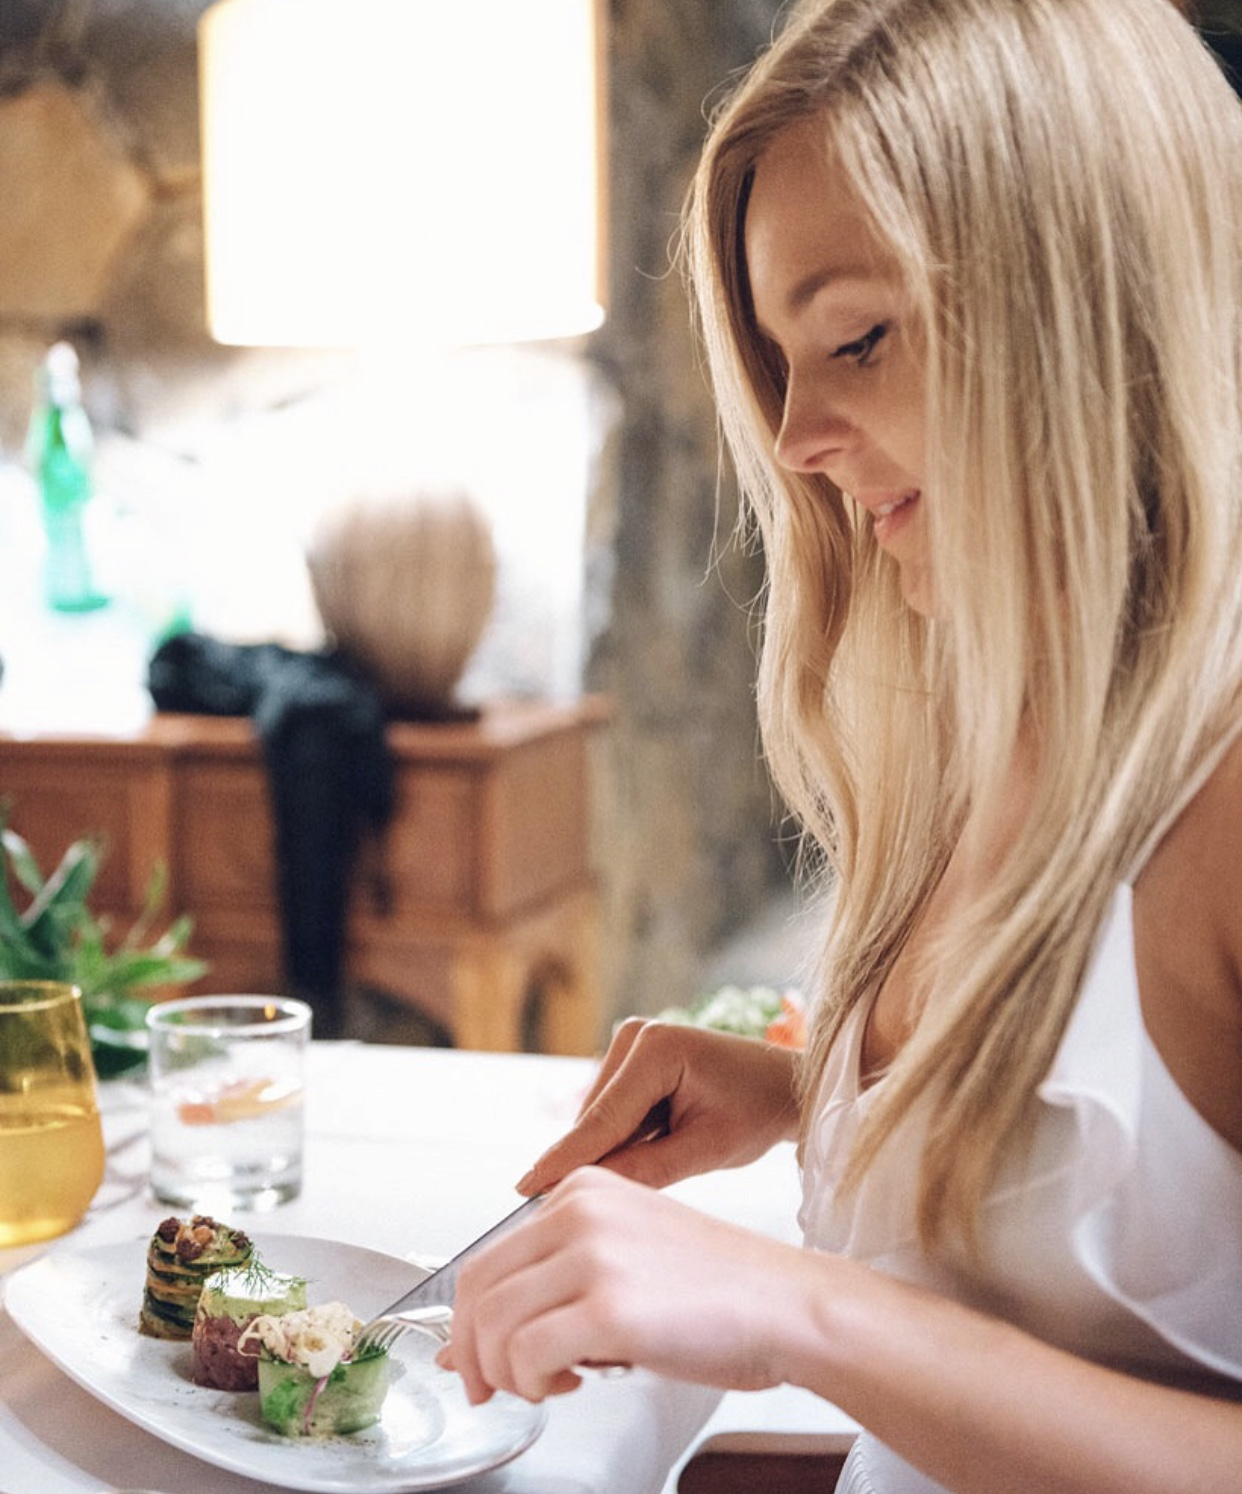 Blonde girl eating healthy food